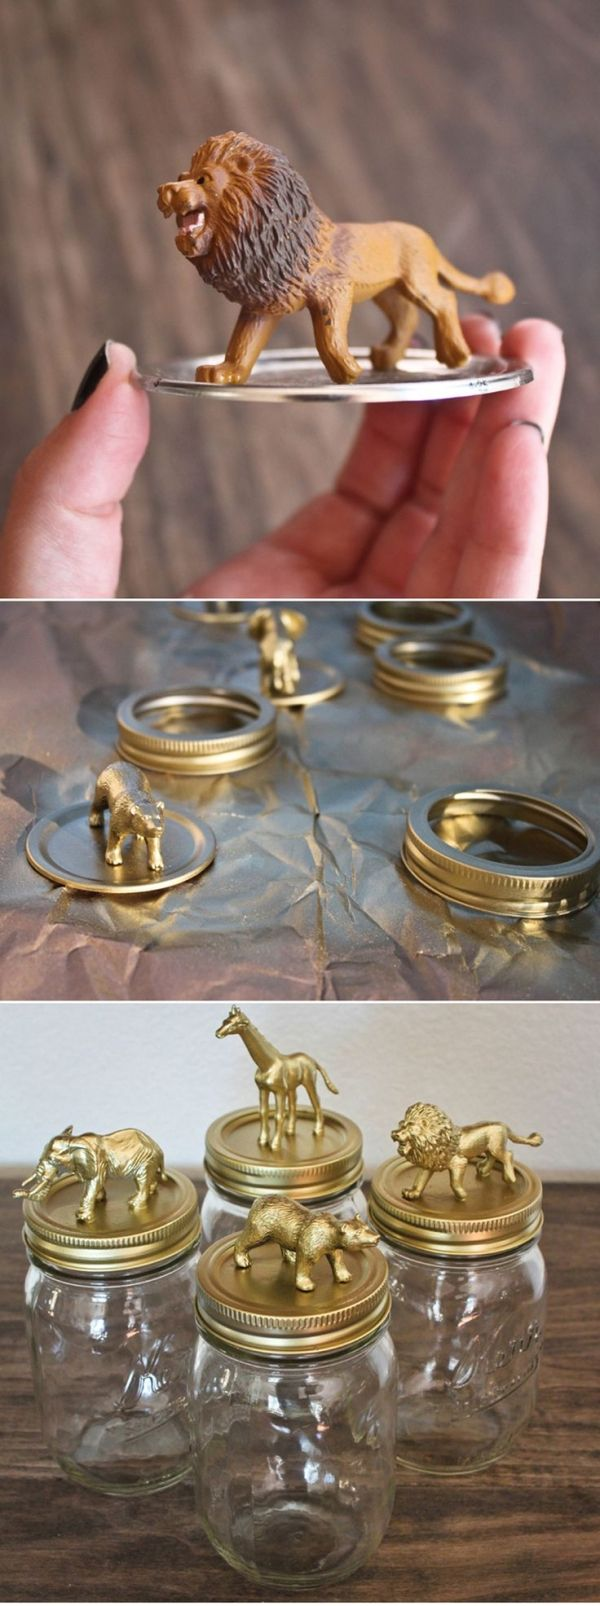 DIY Golden Safari Mason Jar Caps great for changing table things like cotton balls or small toys. Can use plastic containers instead for safety by judith